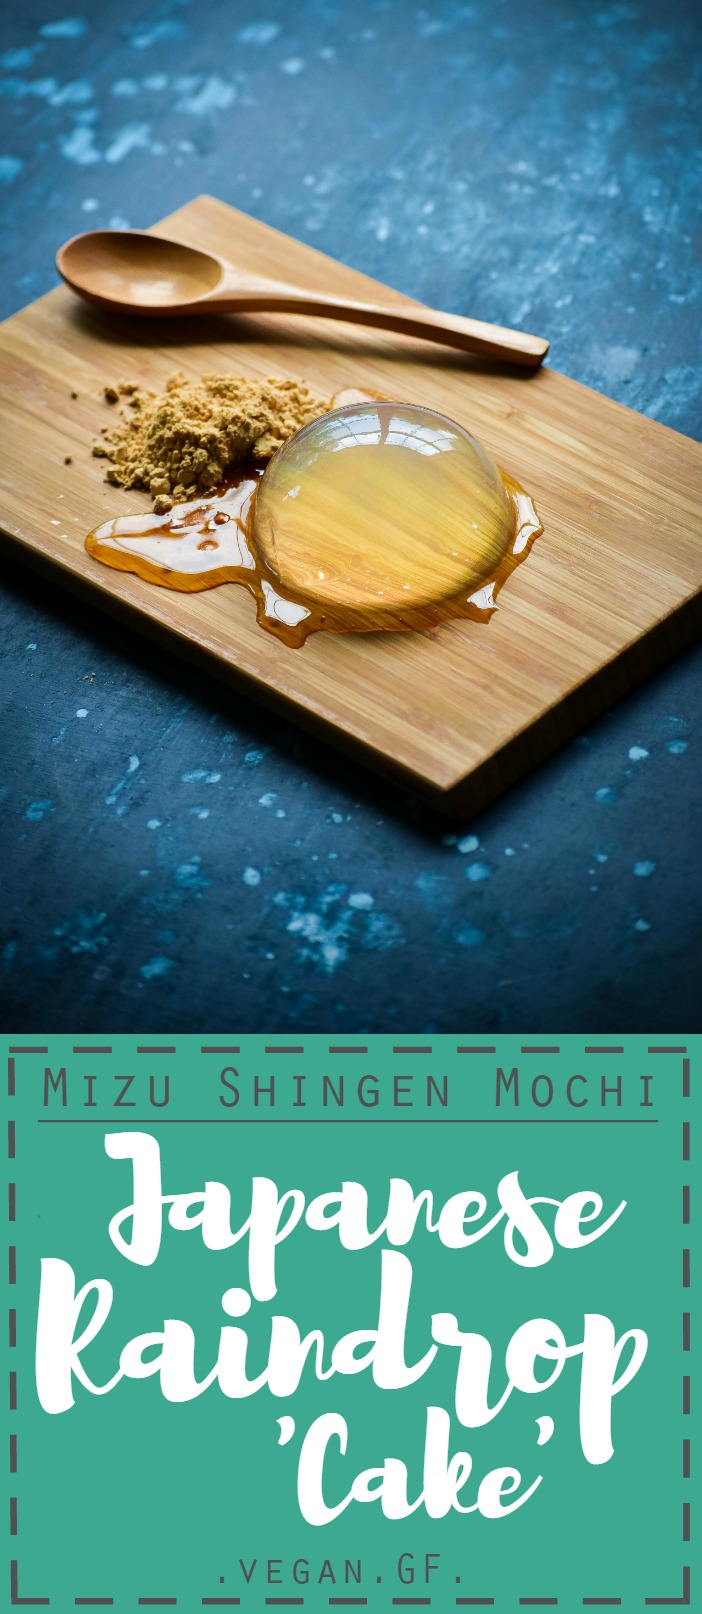 The Japanese Raindrop Cake that took the Internet by the storm: Mizu Shingen Mochi. Save yourself a trip to Japan and make it at home. 3 ingredients. Vegan. Gluten-Free. Yumm!